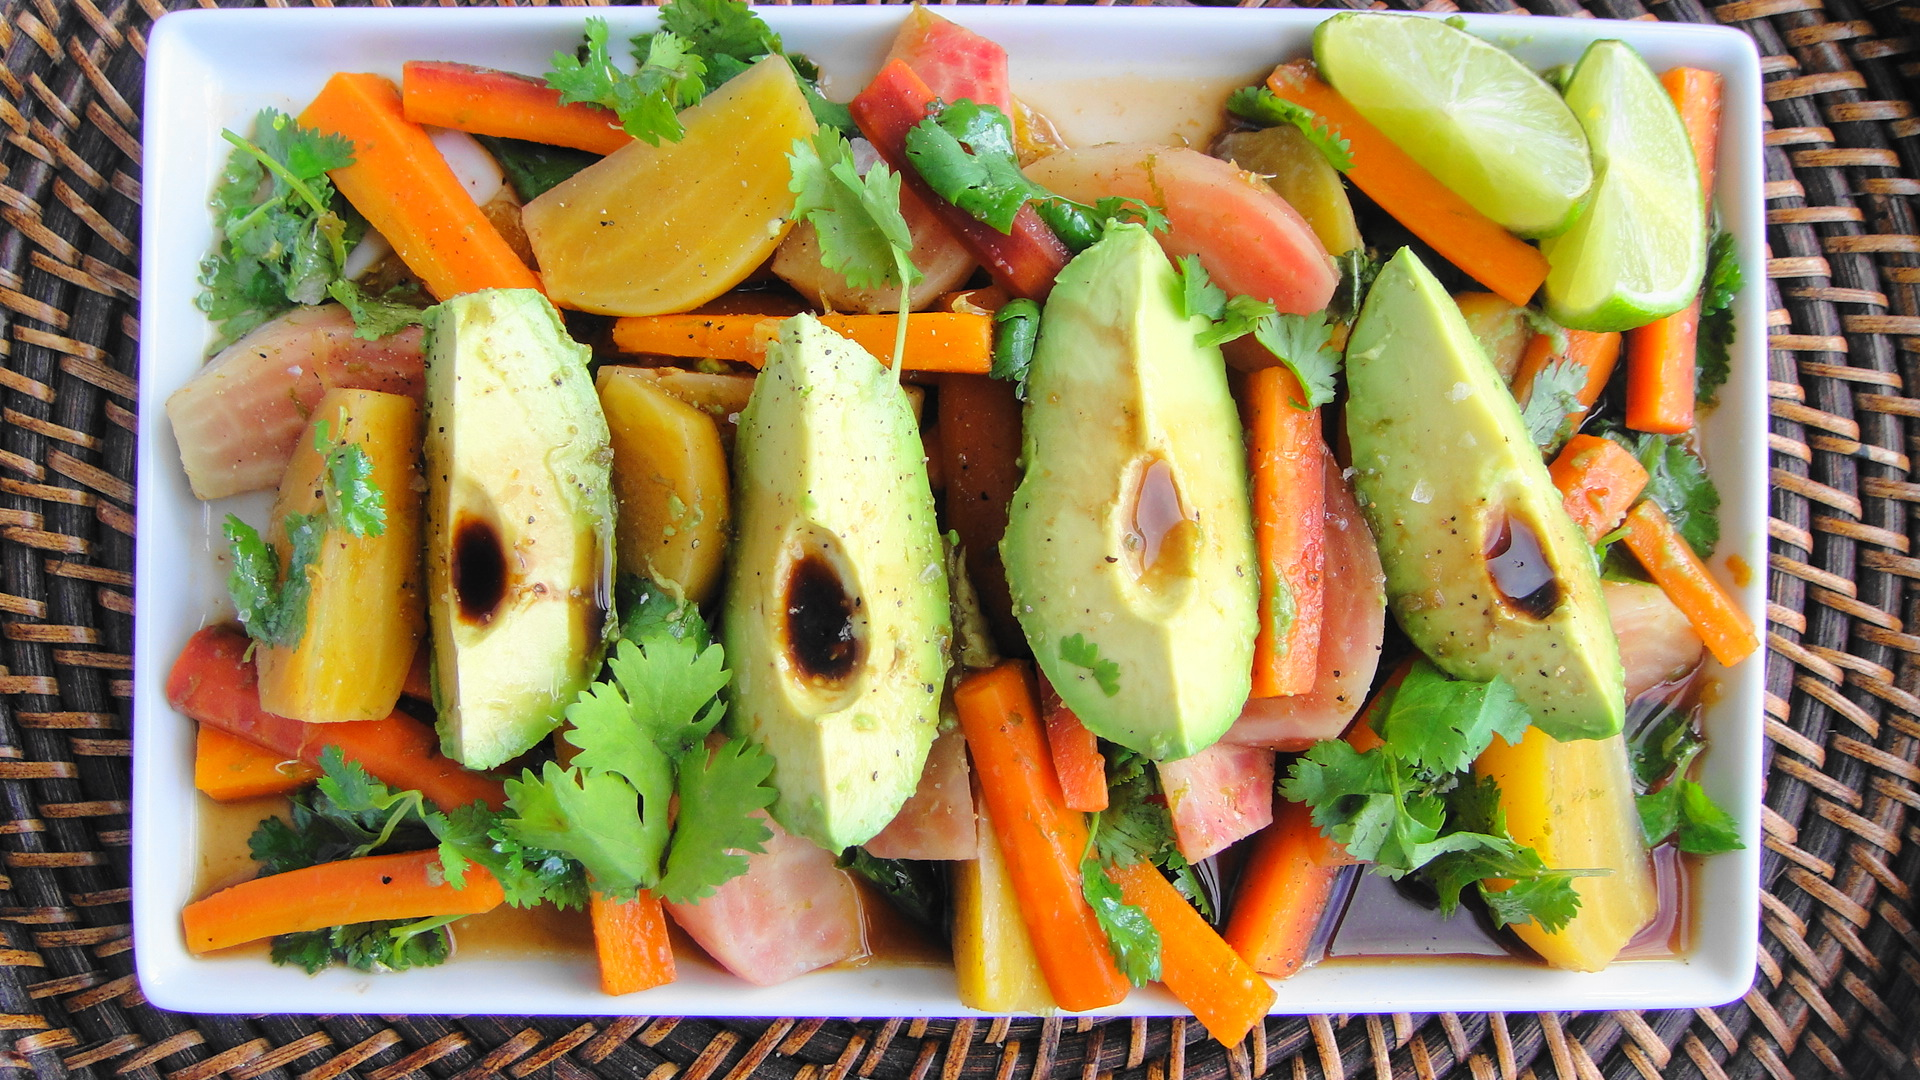 Avocado Beet Carrot (ABC) Salad